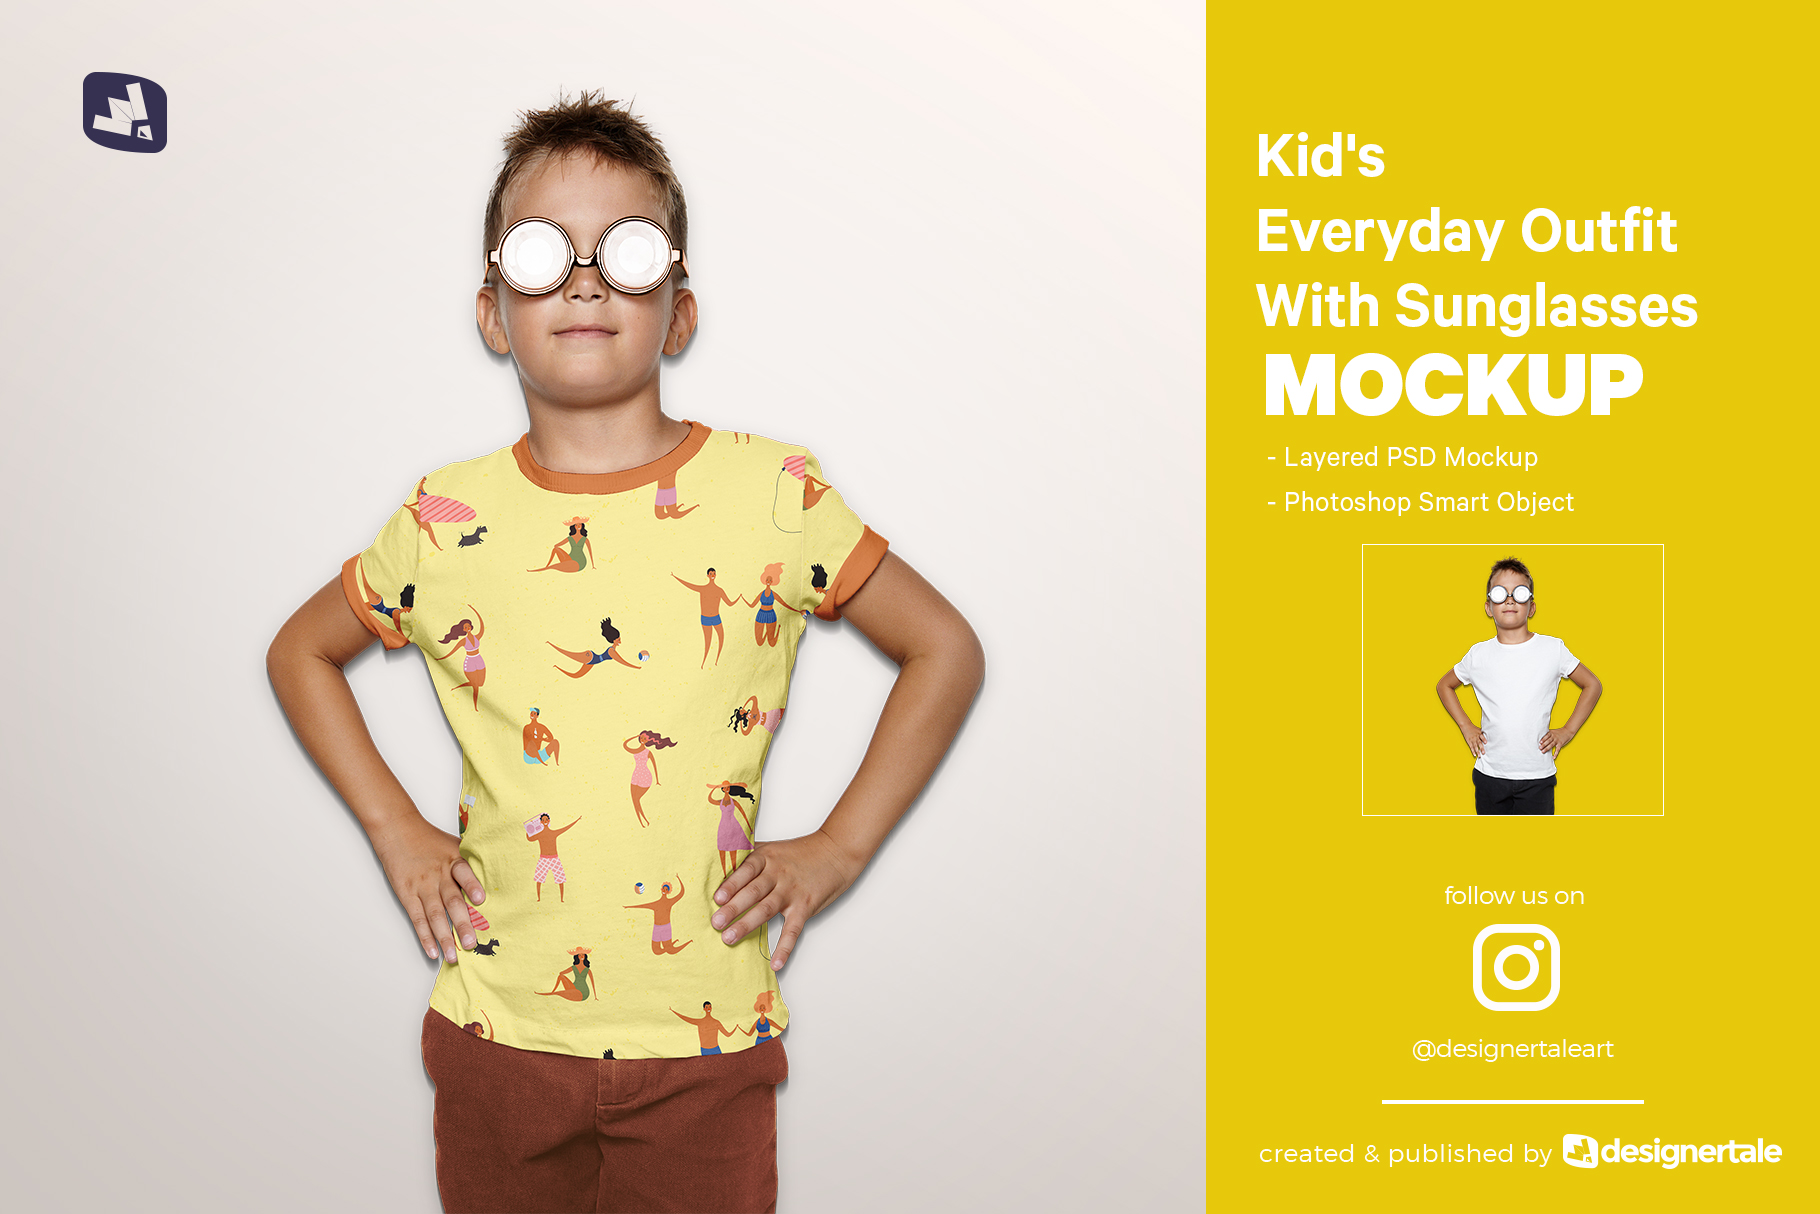 kid's everyday outfit mockup with sunglasses